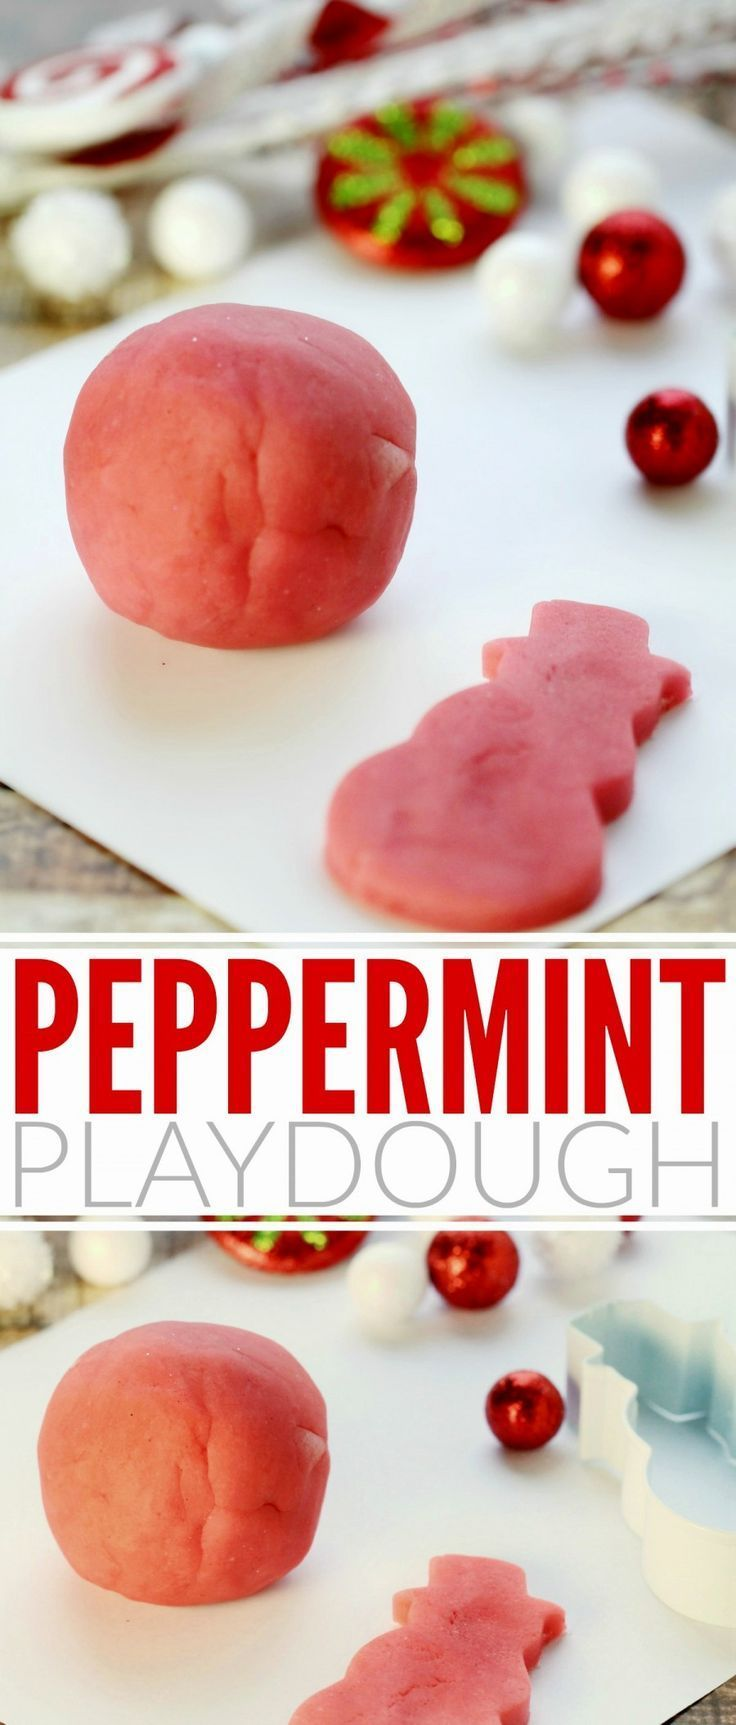 This Peppermint Playdough recipe is not only edible, it also smells great too! Kids will love playing with this fun scented homemade playdough!